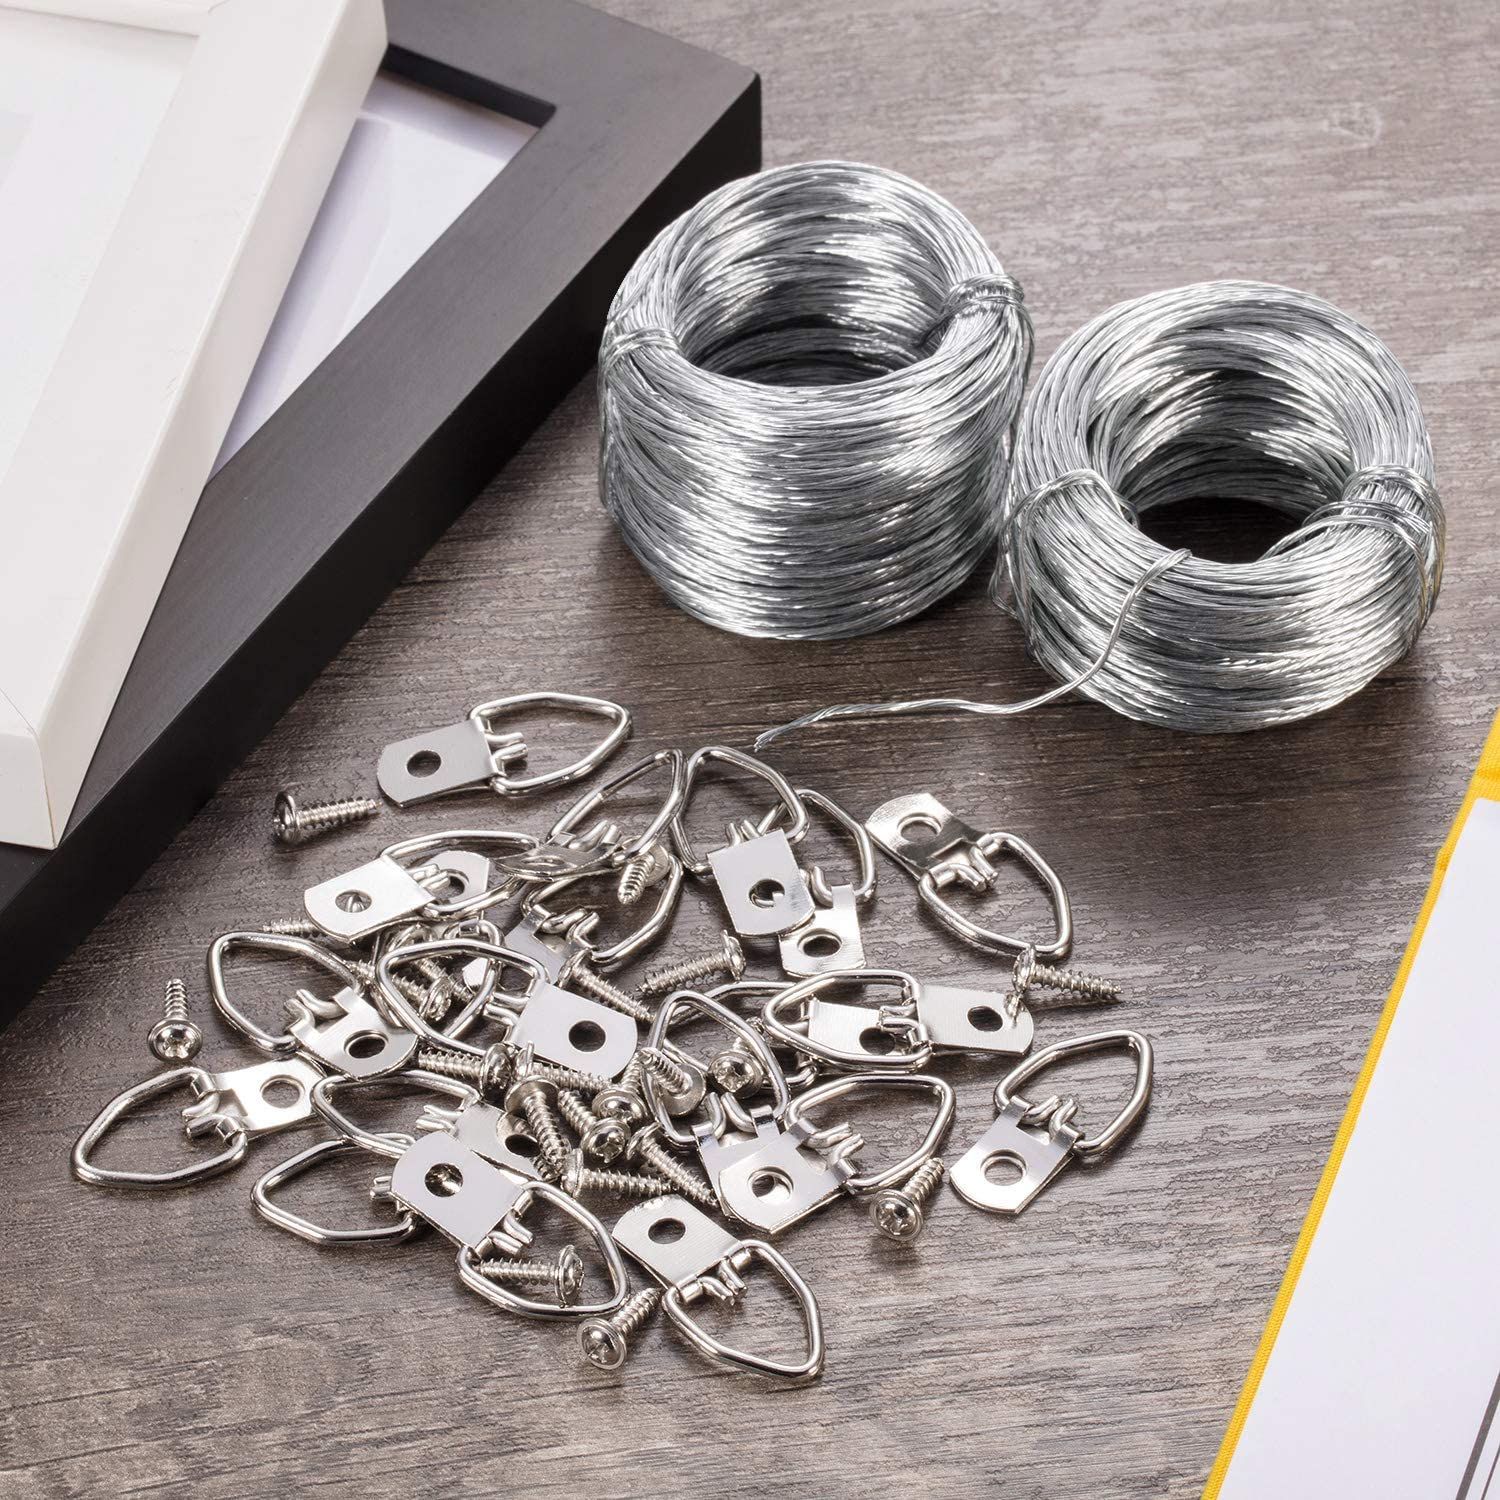 42 Pieces Set Picture Hanging Kit D Ring Picture Hangers with Screws Picture Hanging Wire Supports up to 30 lbs